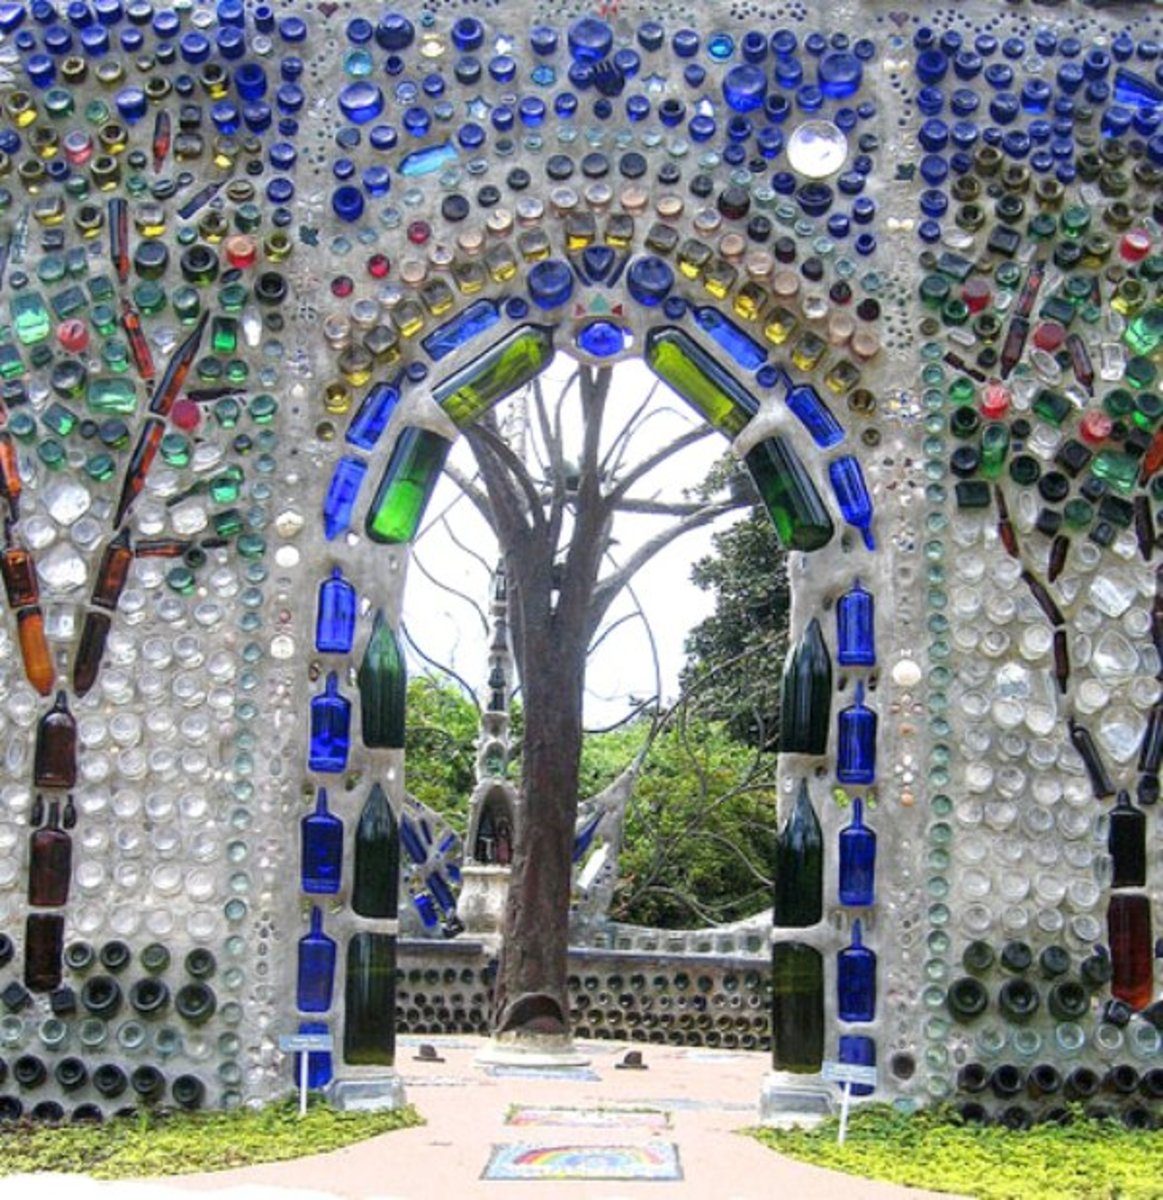 10 ways to reuse and recycle wine bottles for Recycling wine bottles creatively